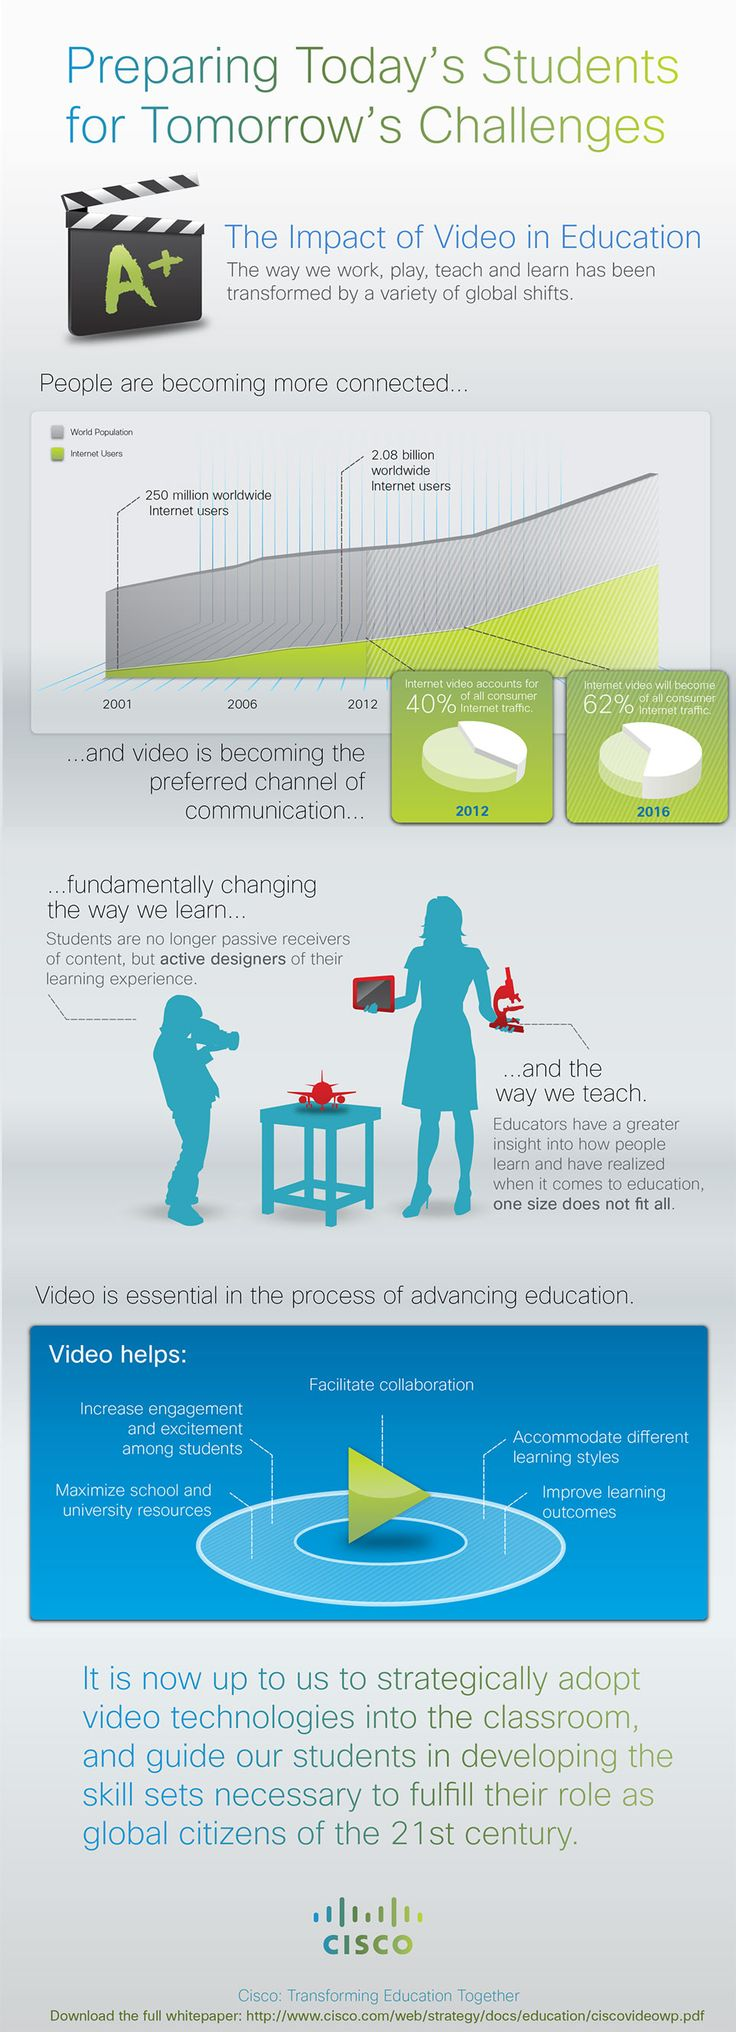 Preparing Today's Students For Tomorrow's Challenges [INFOGRAPHIC]